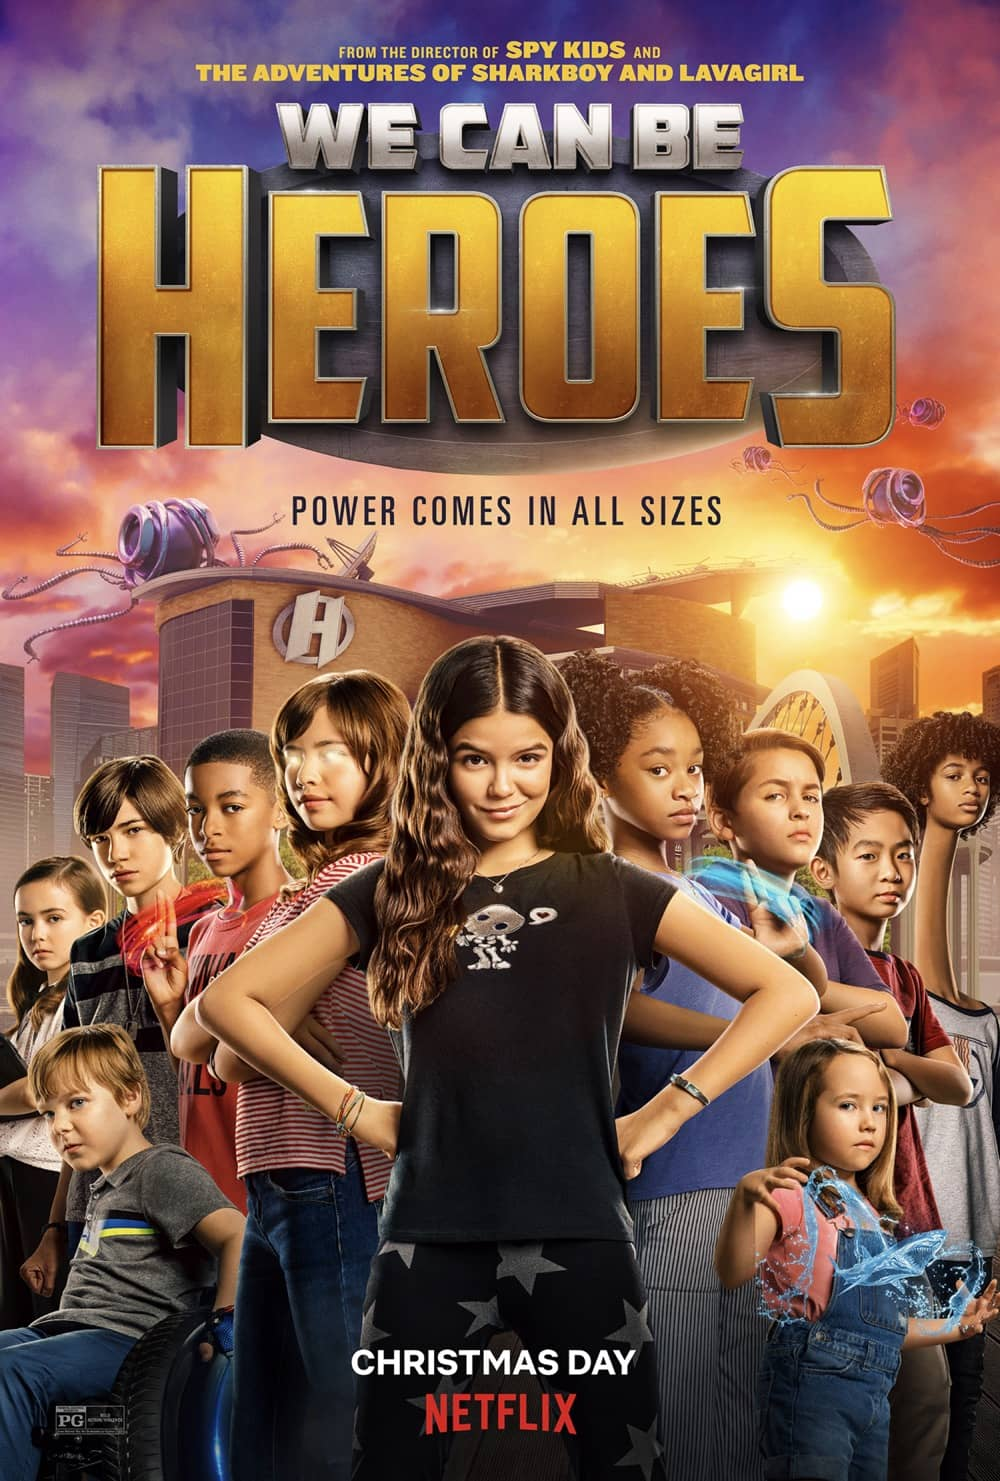 We Can Be Heroes Character Poster